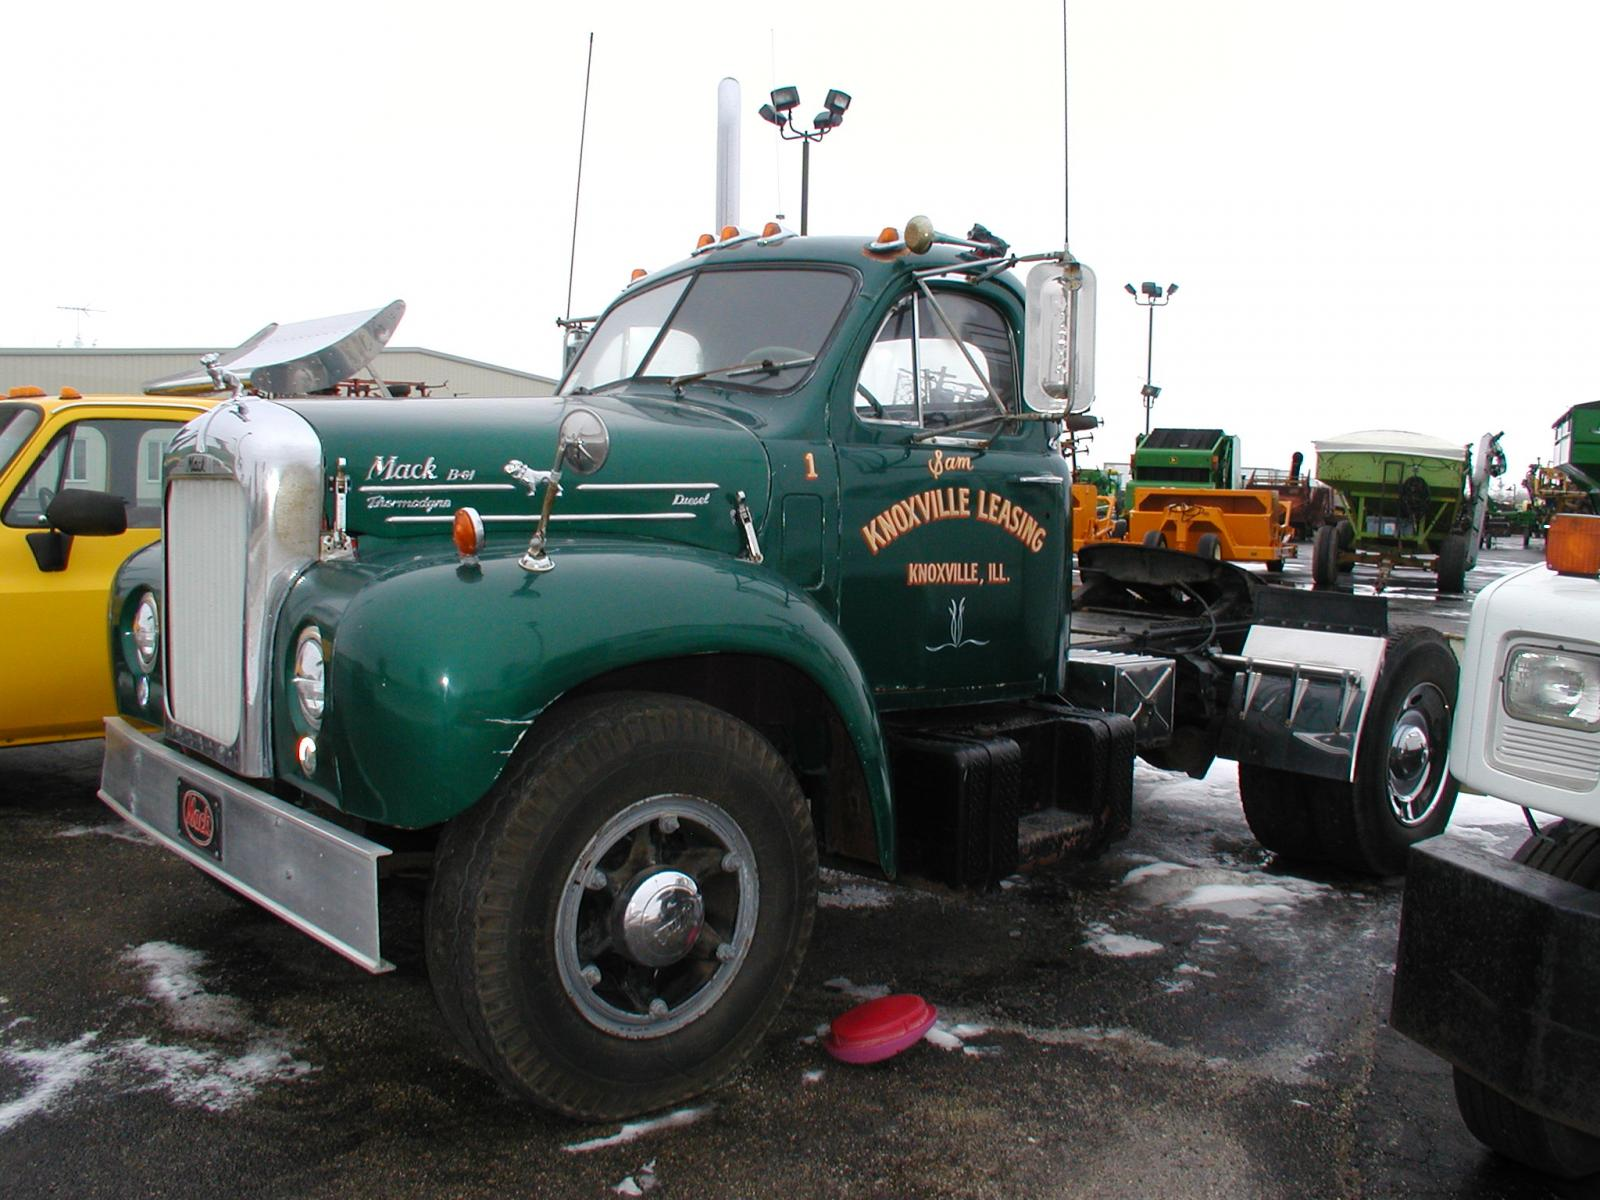 Spotted B-61 for sale - Antique and Classic Mack Trucks ...